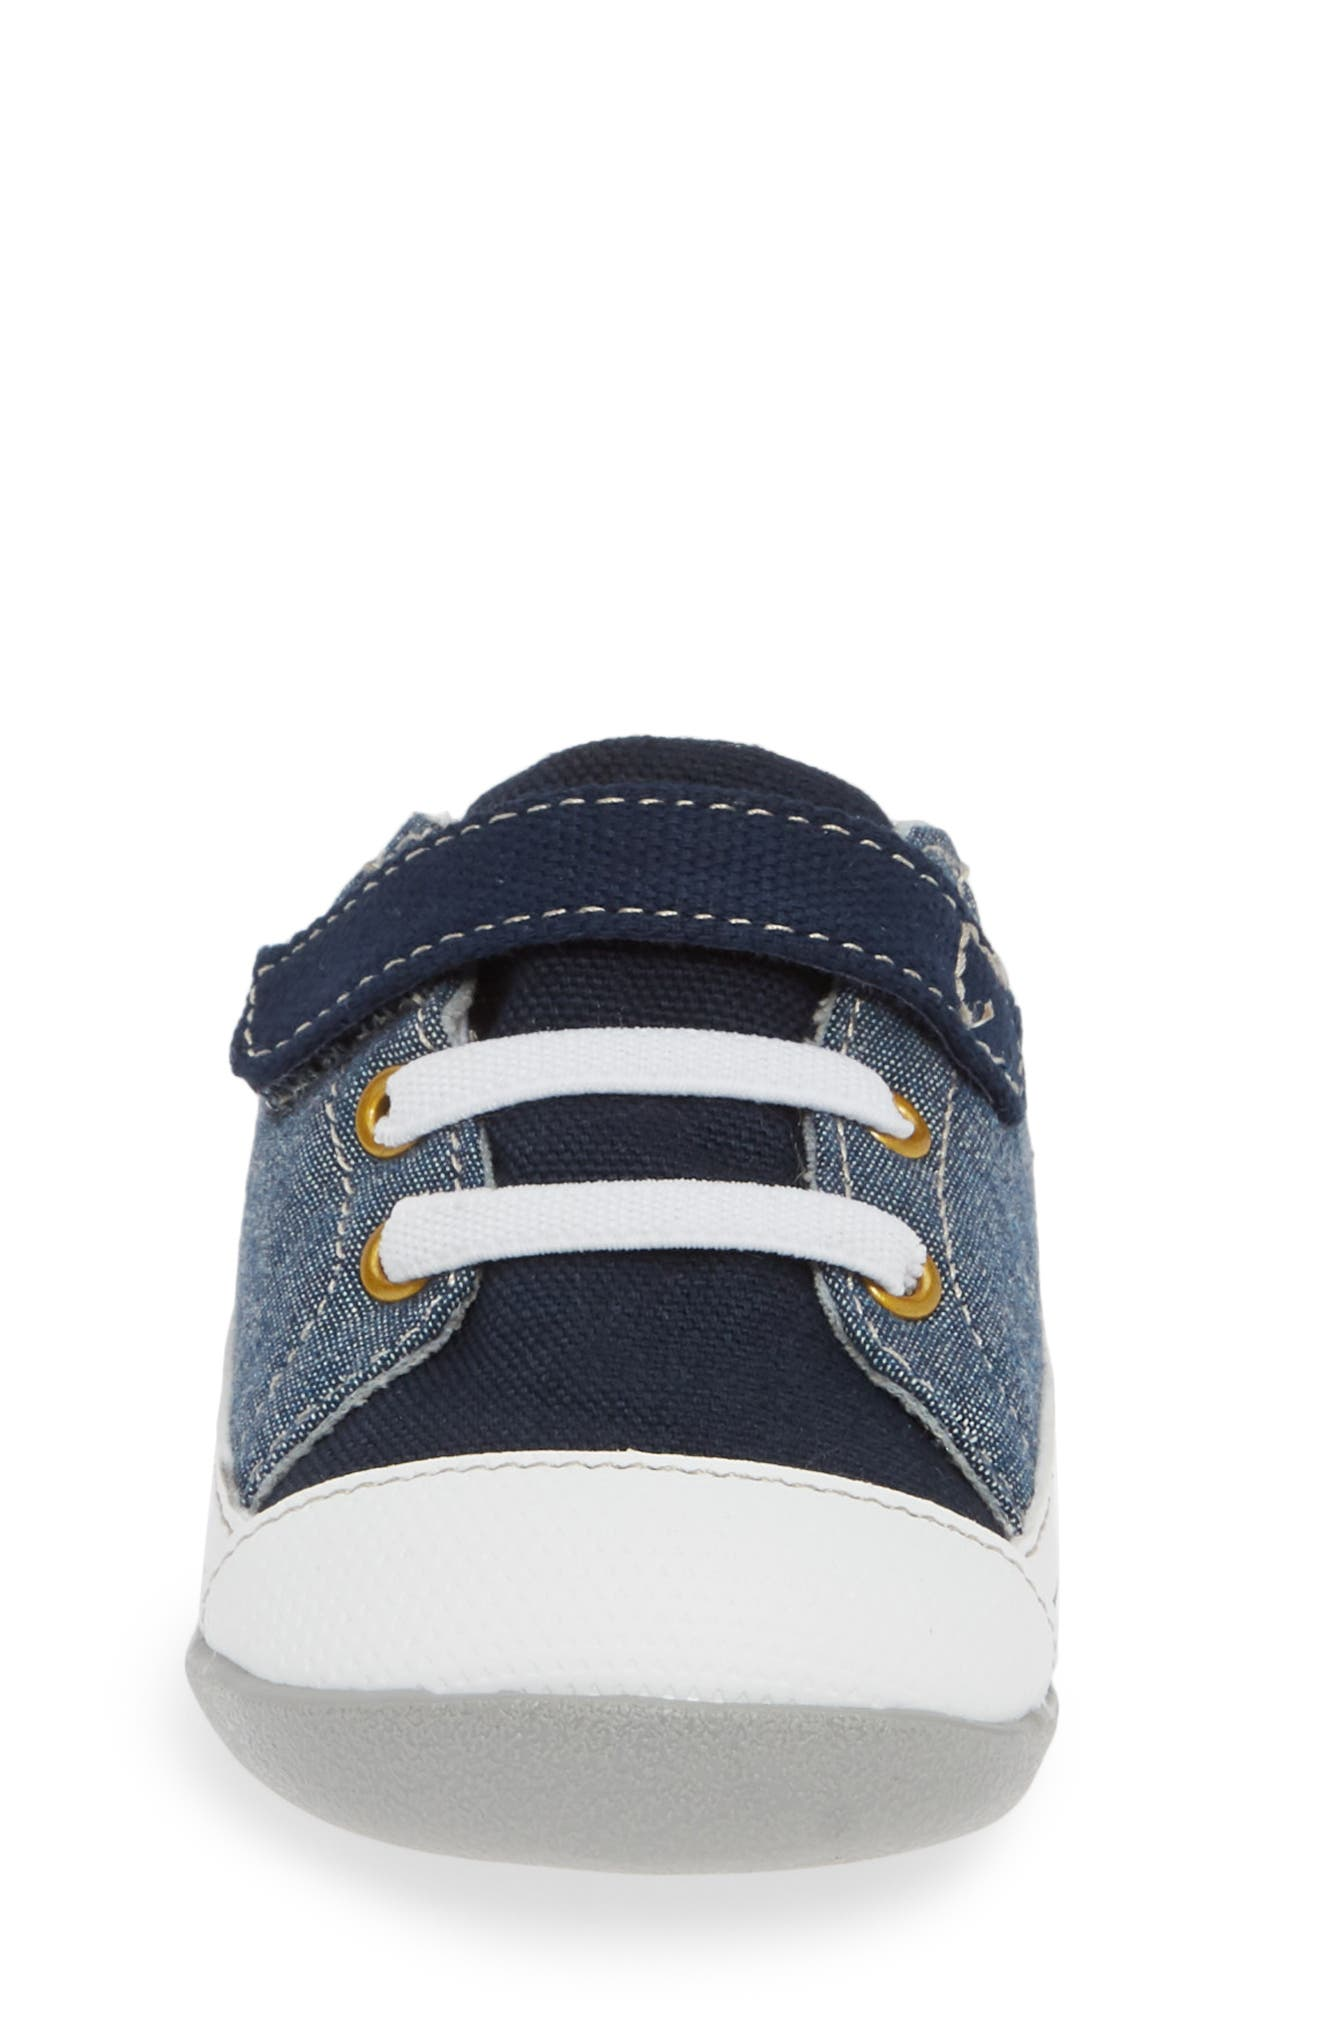 Stevie II Sneaker,                             Alternate thumbnail 4, color,                             BLUE DENIM